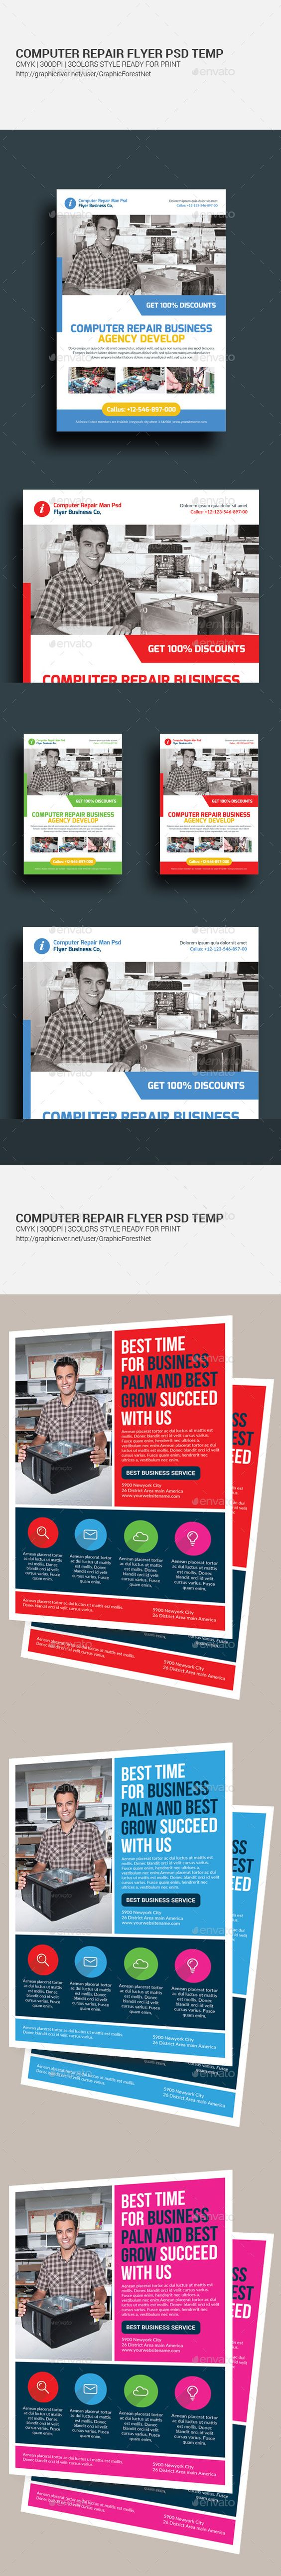 Computer Repair Flyers Bundle  Computer Repair Fonts And Font Logo